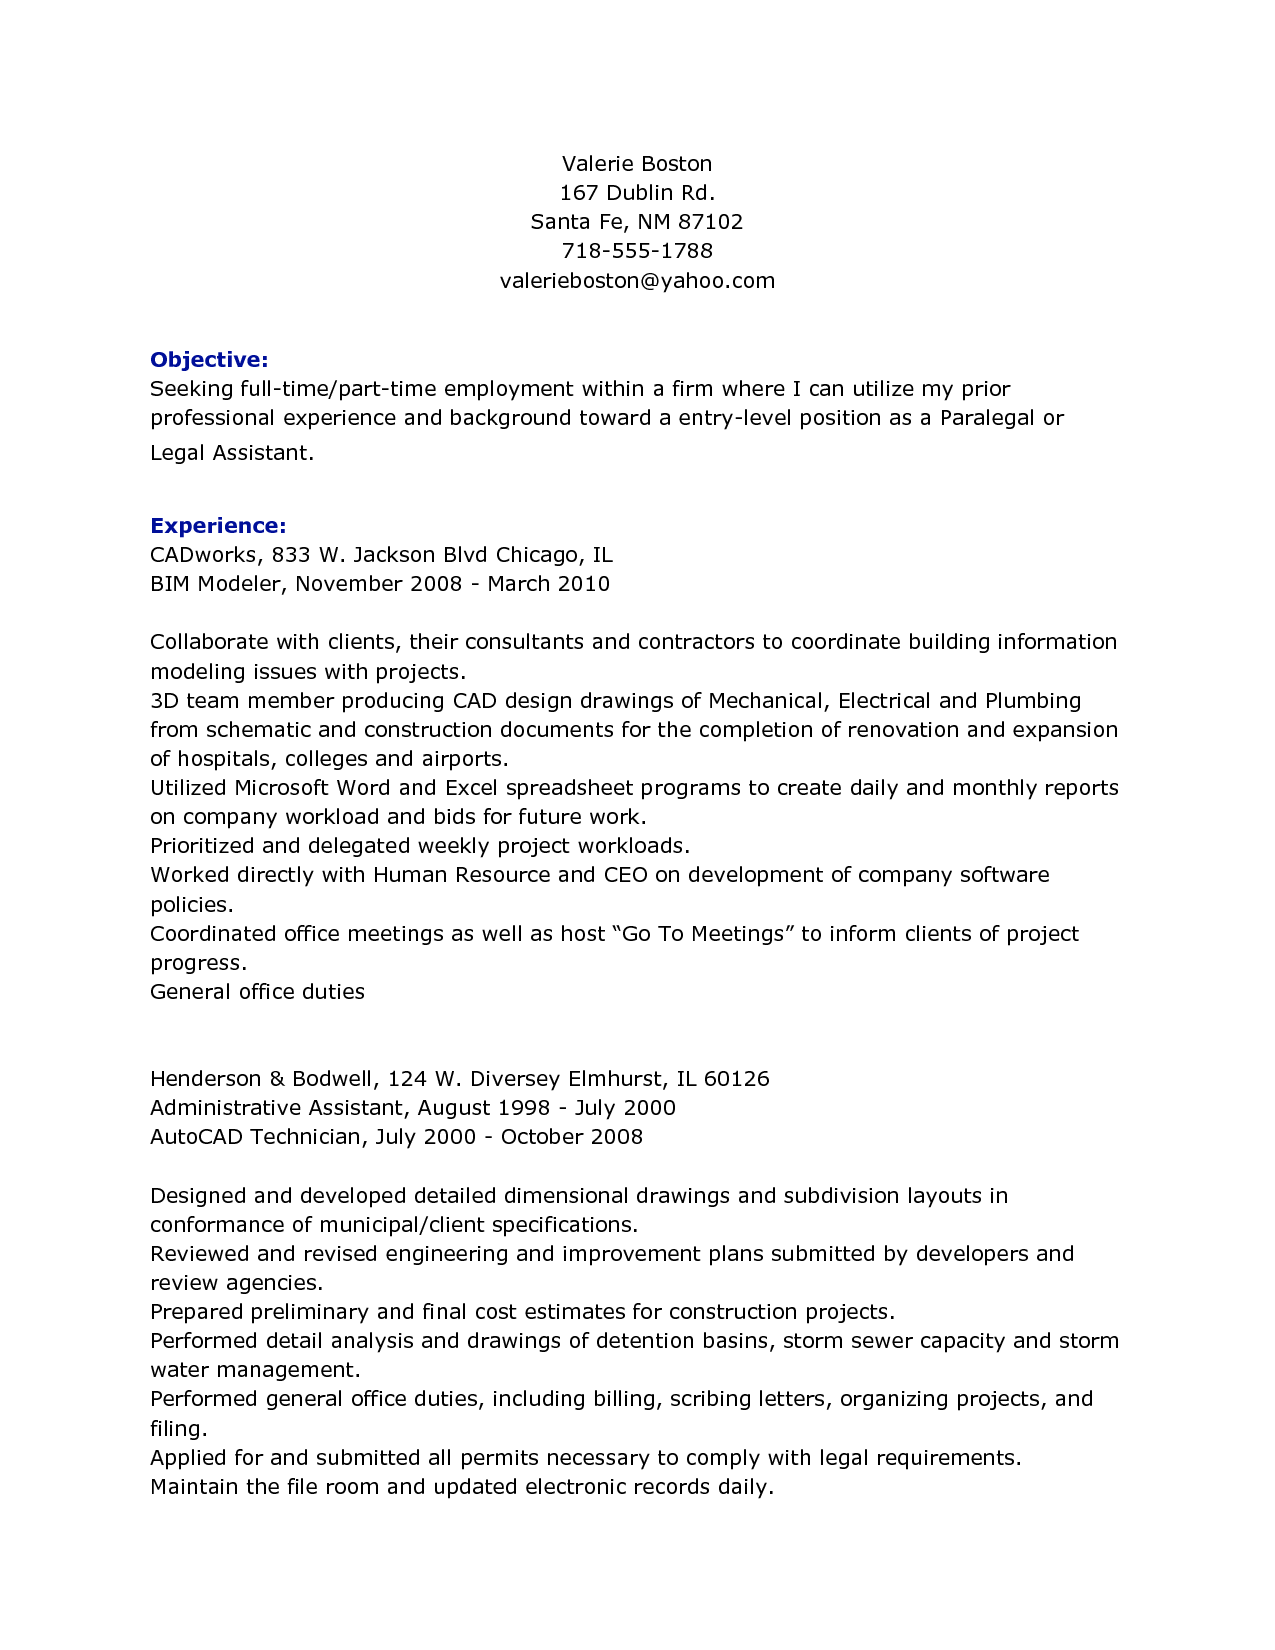 resume self description